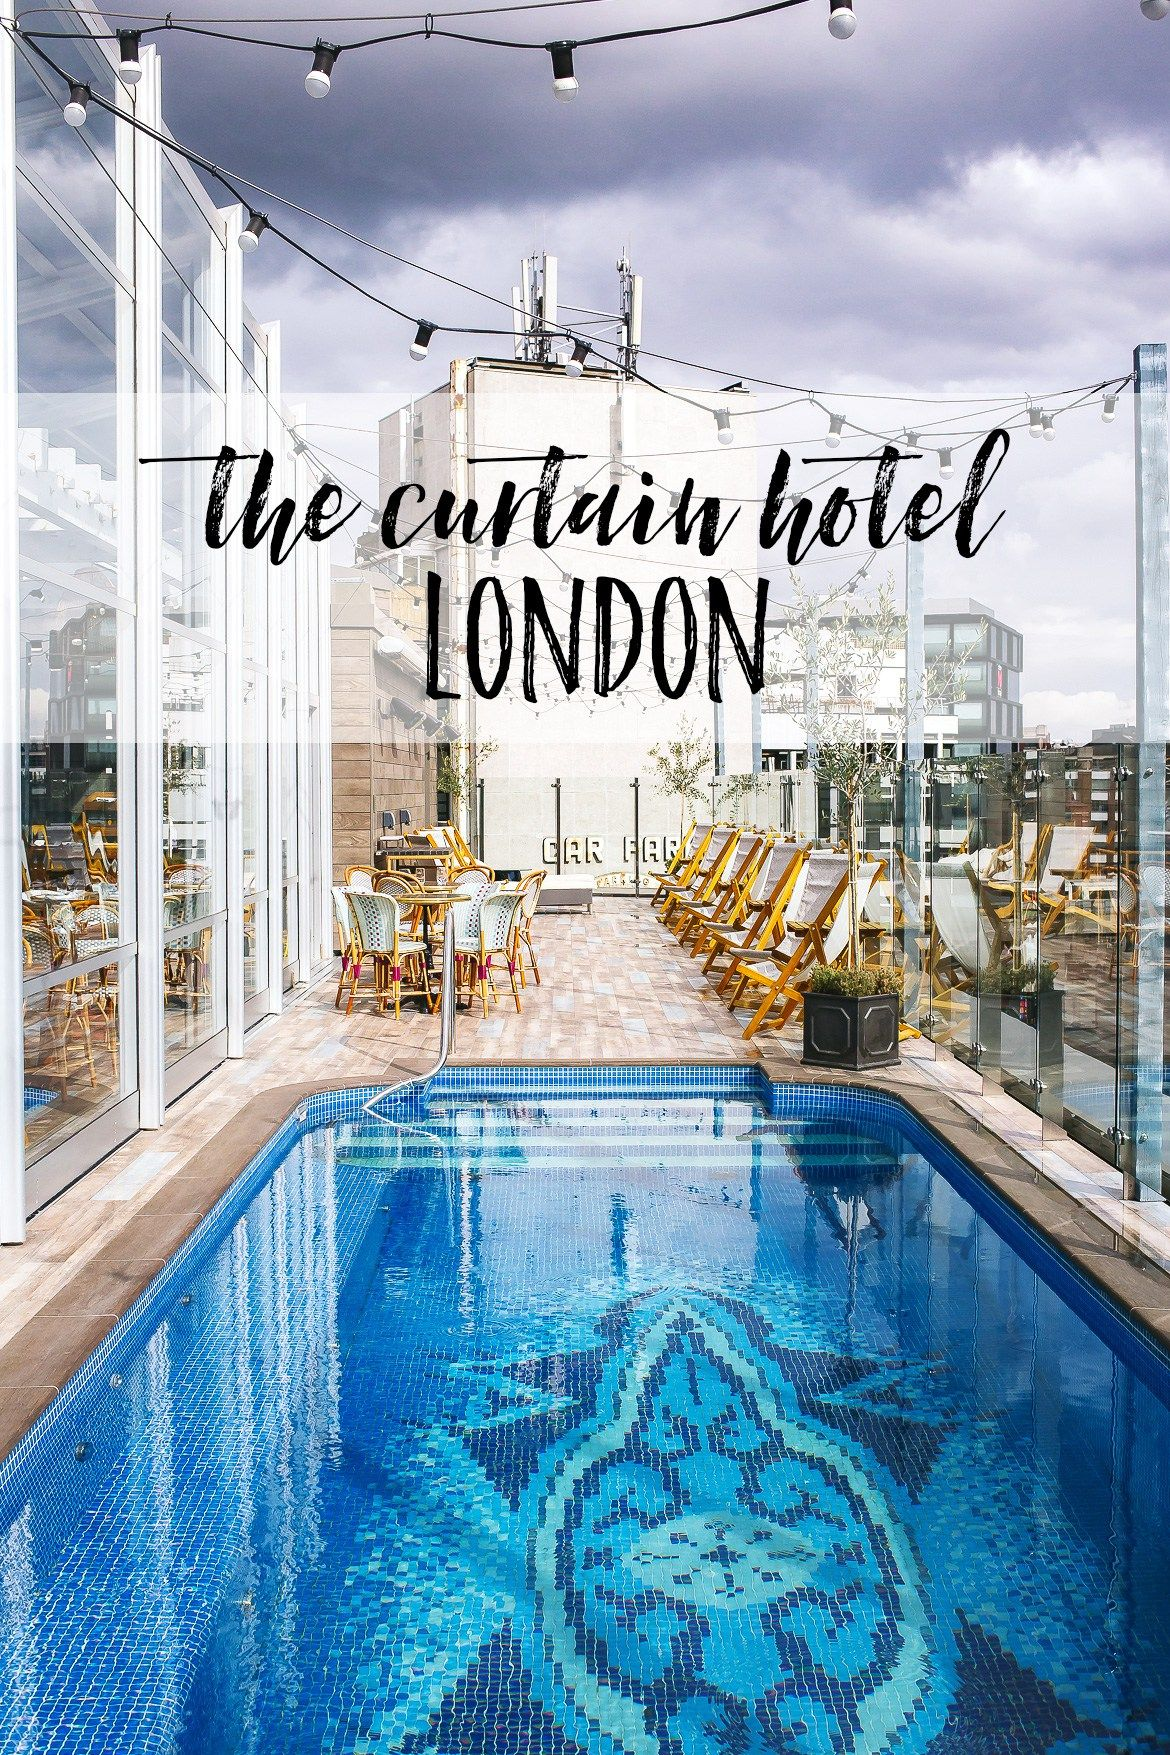 Poolside Dining At The Curtain Hotel London With Images London Hotels London Tours London